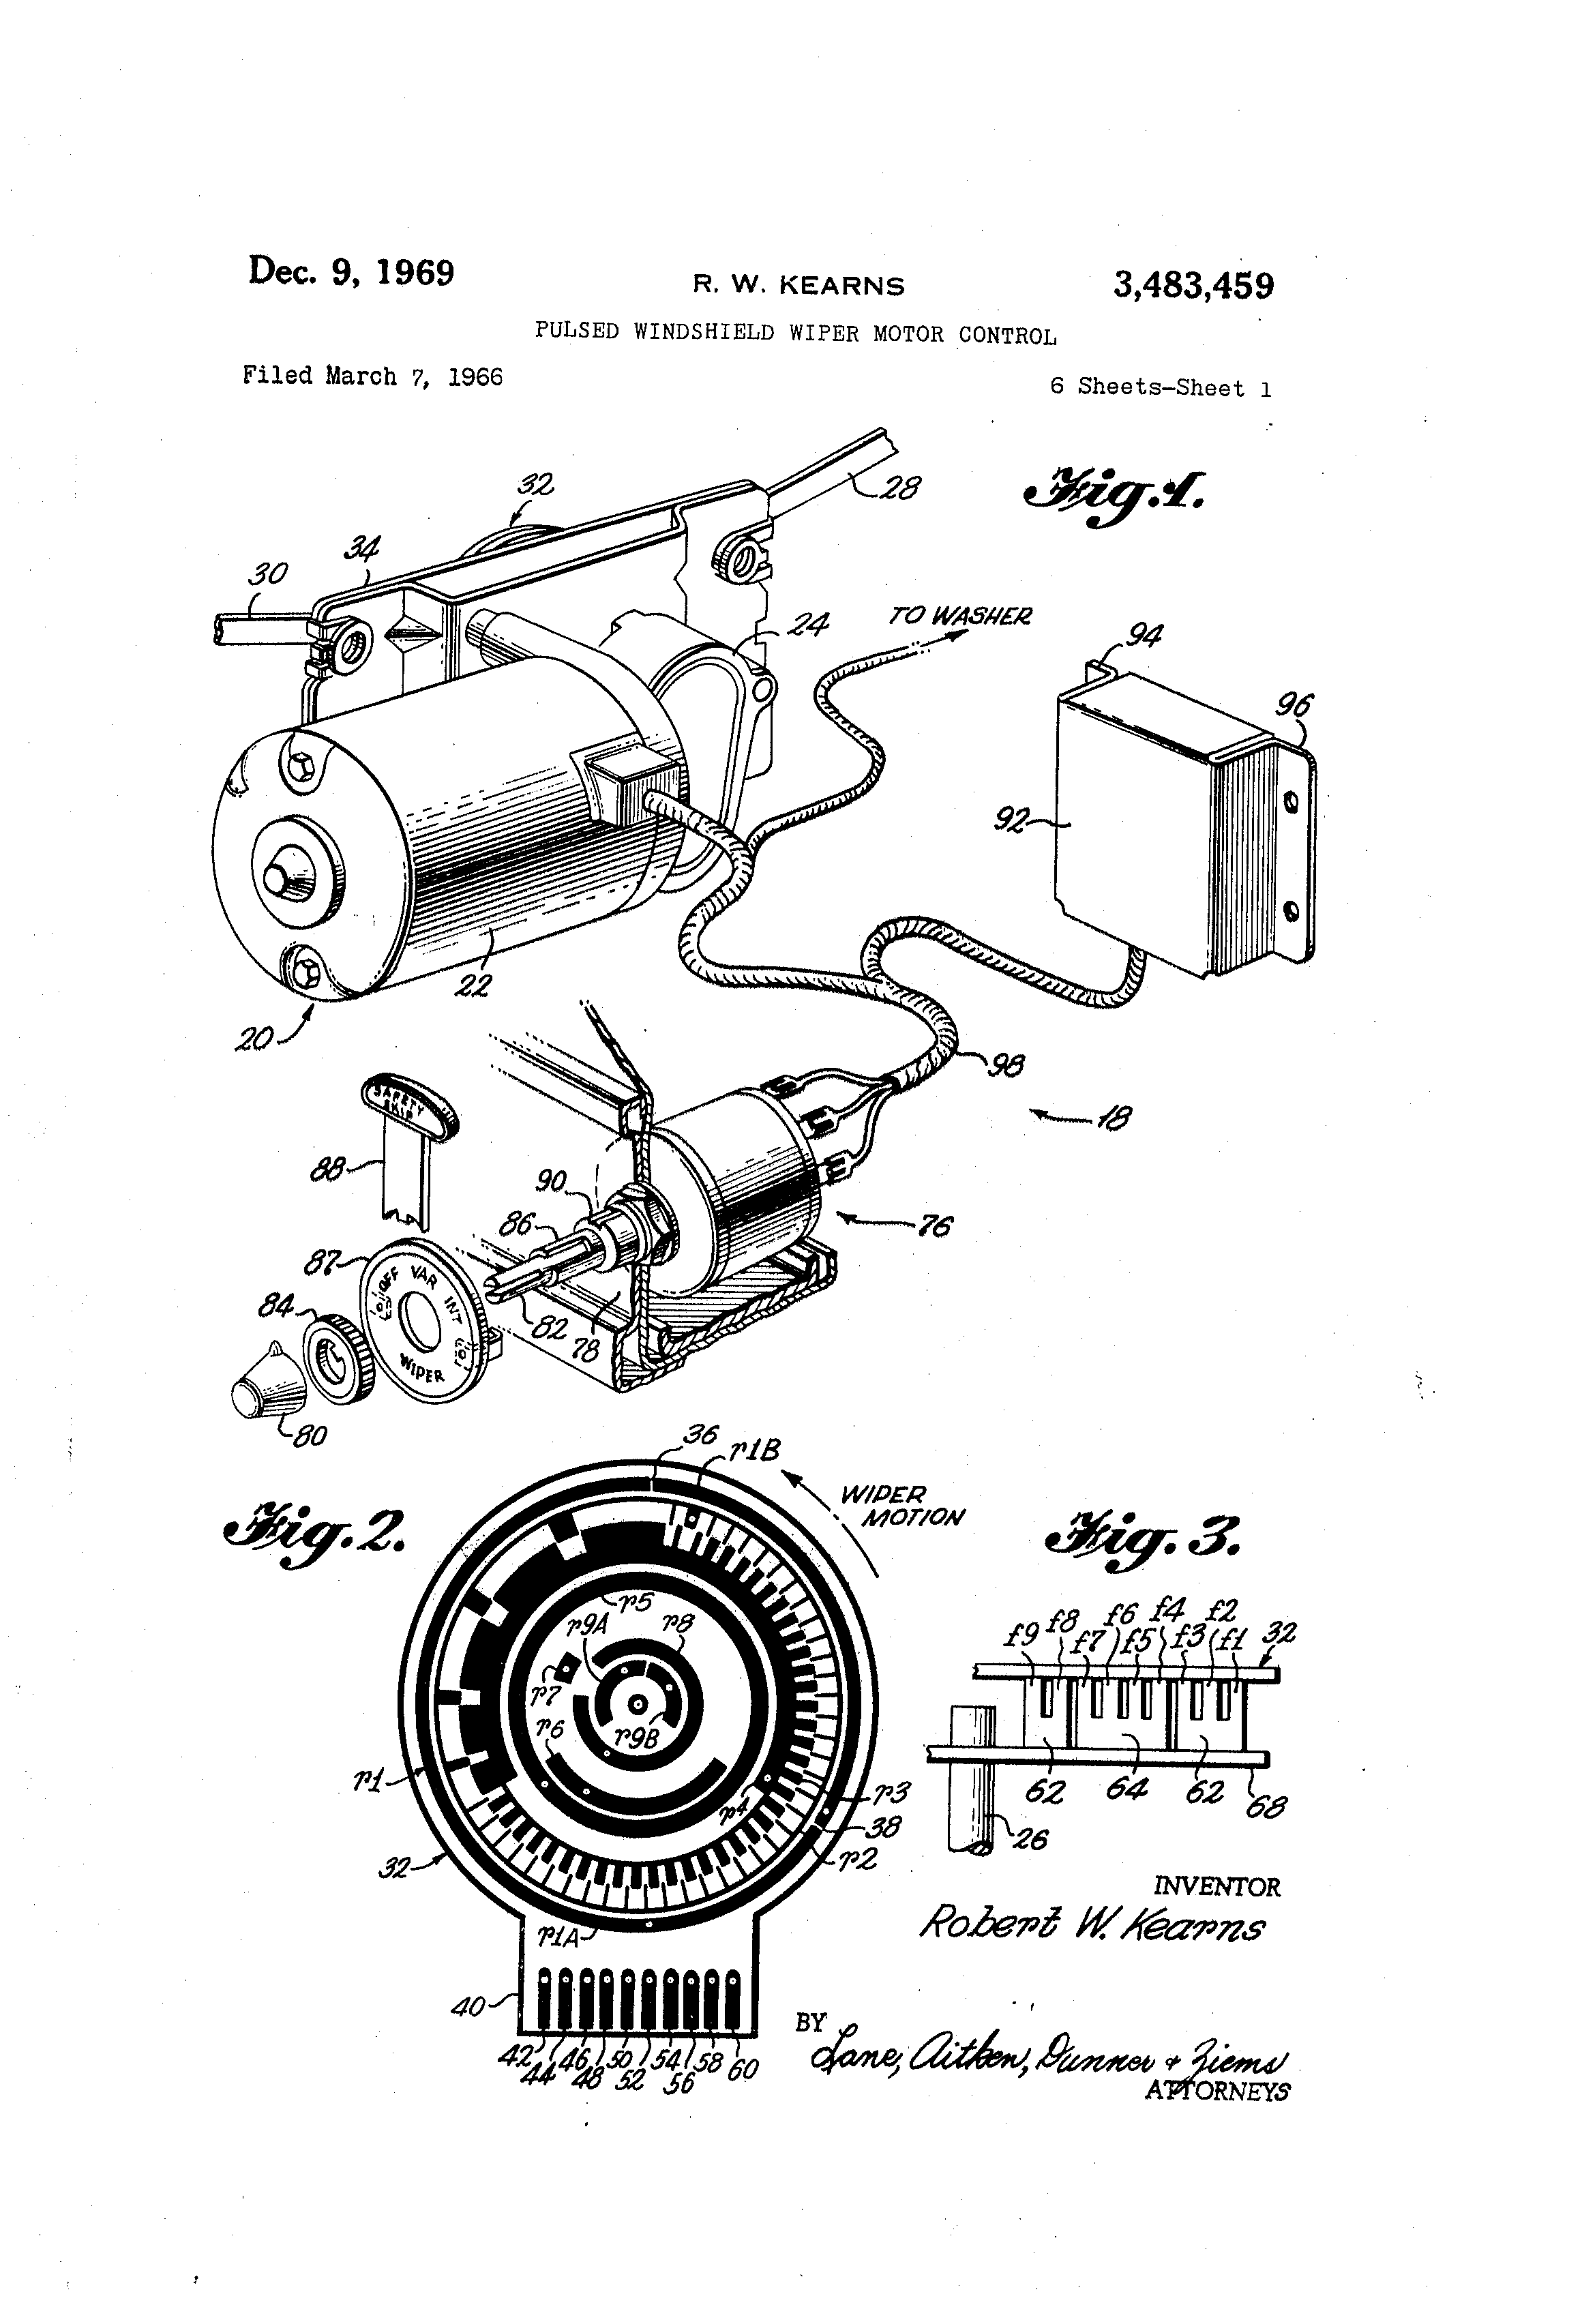 US3483459 0 patent us3483459 pulsed windshield wiper motor control google gmf electric motor wiring diagram at soozxer.org